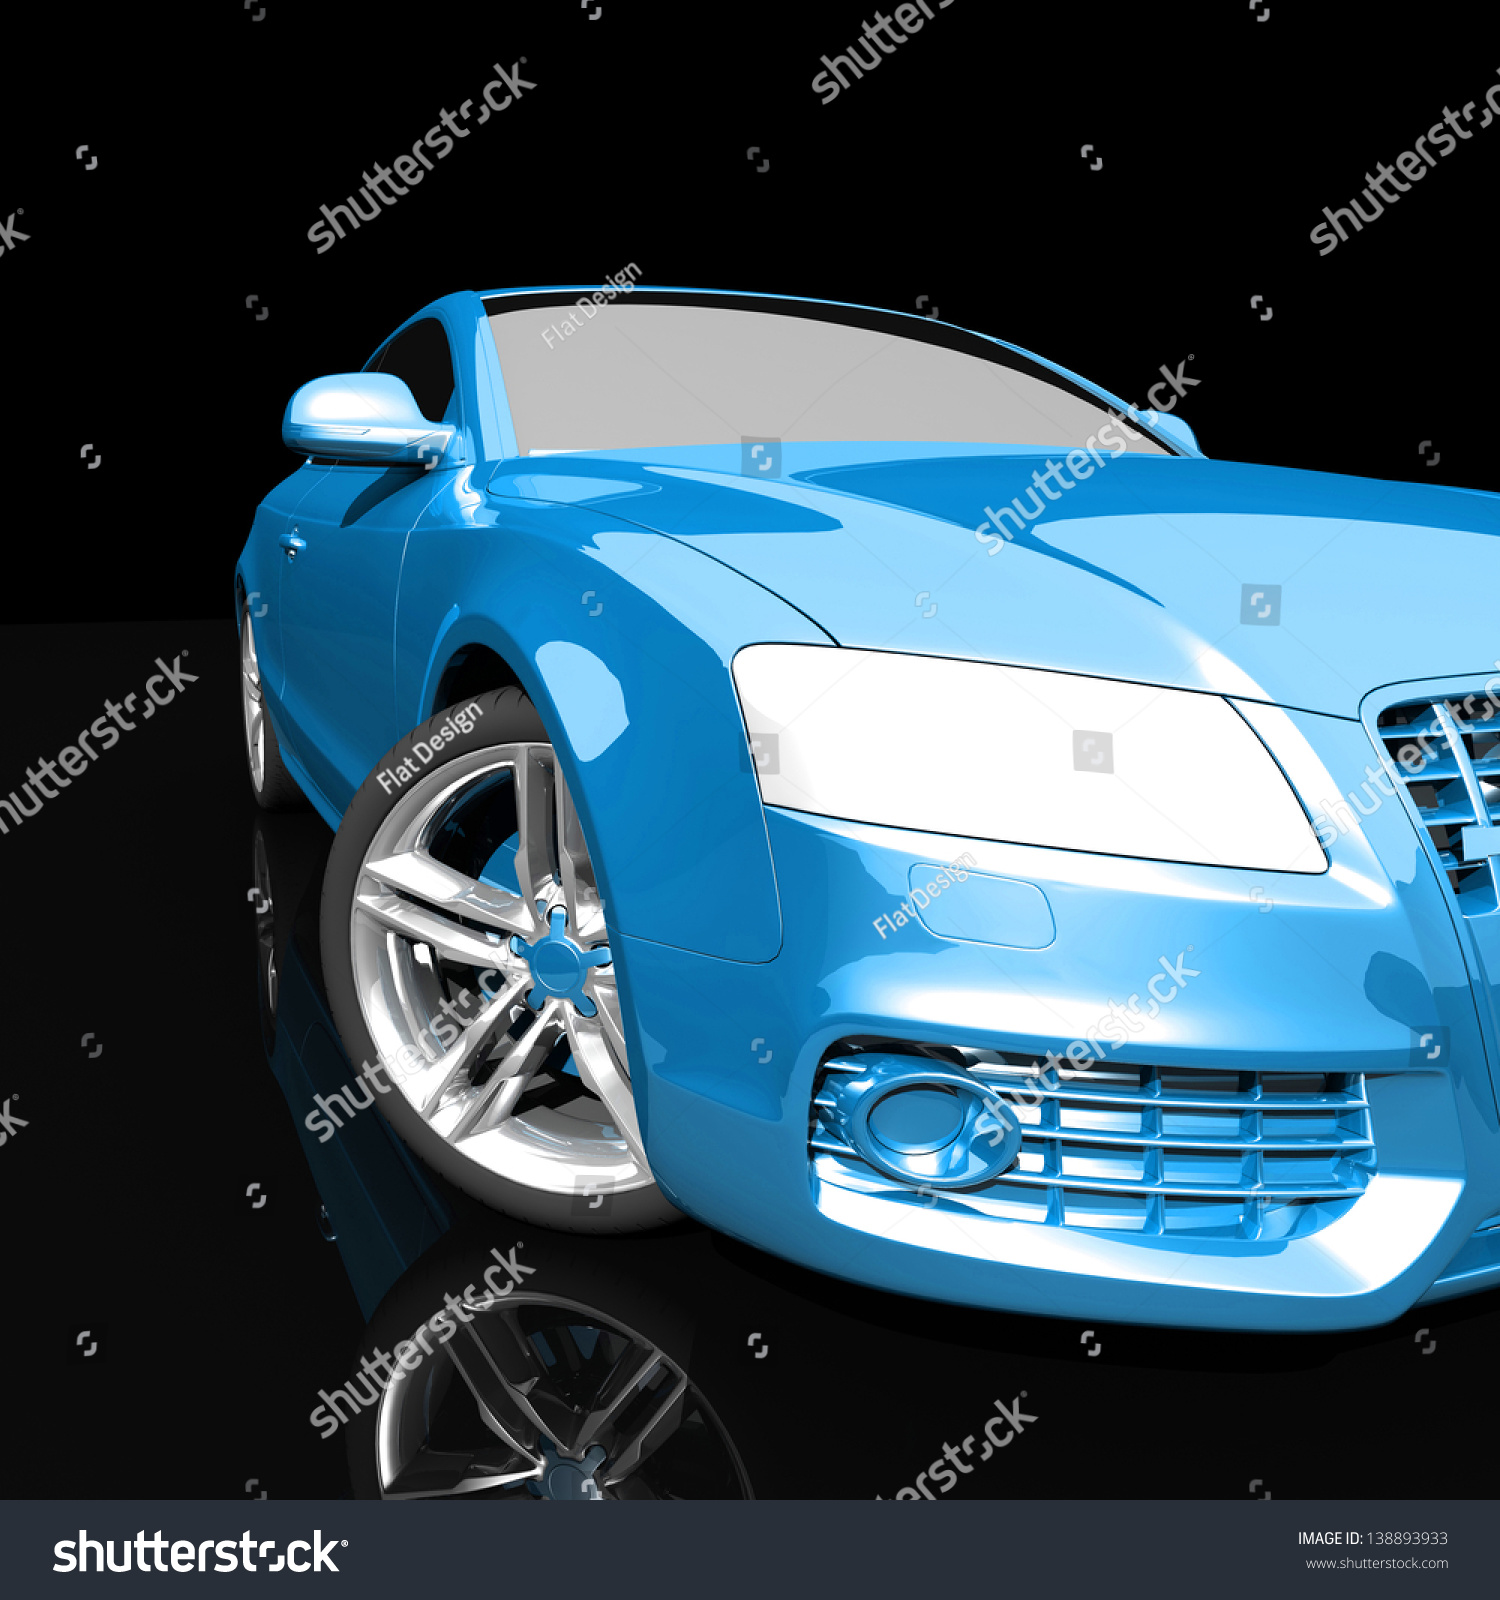 car blue color on a dark background. with shiny paint and lights